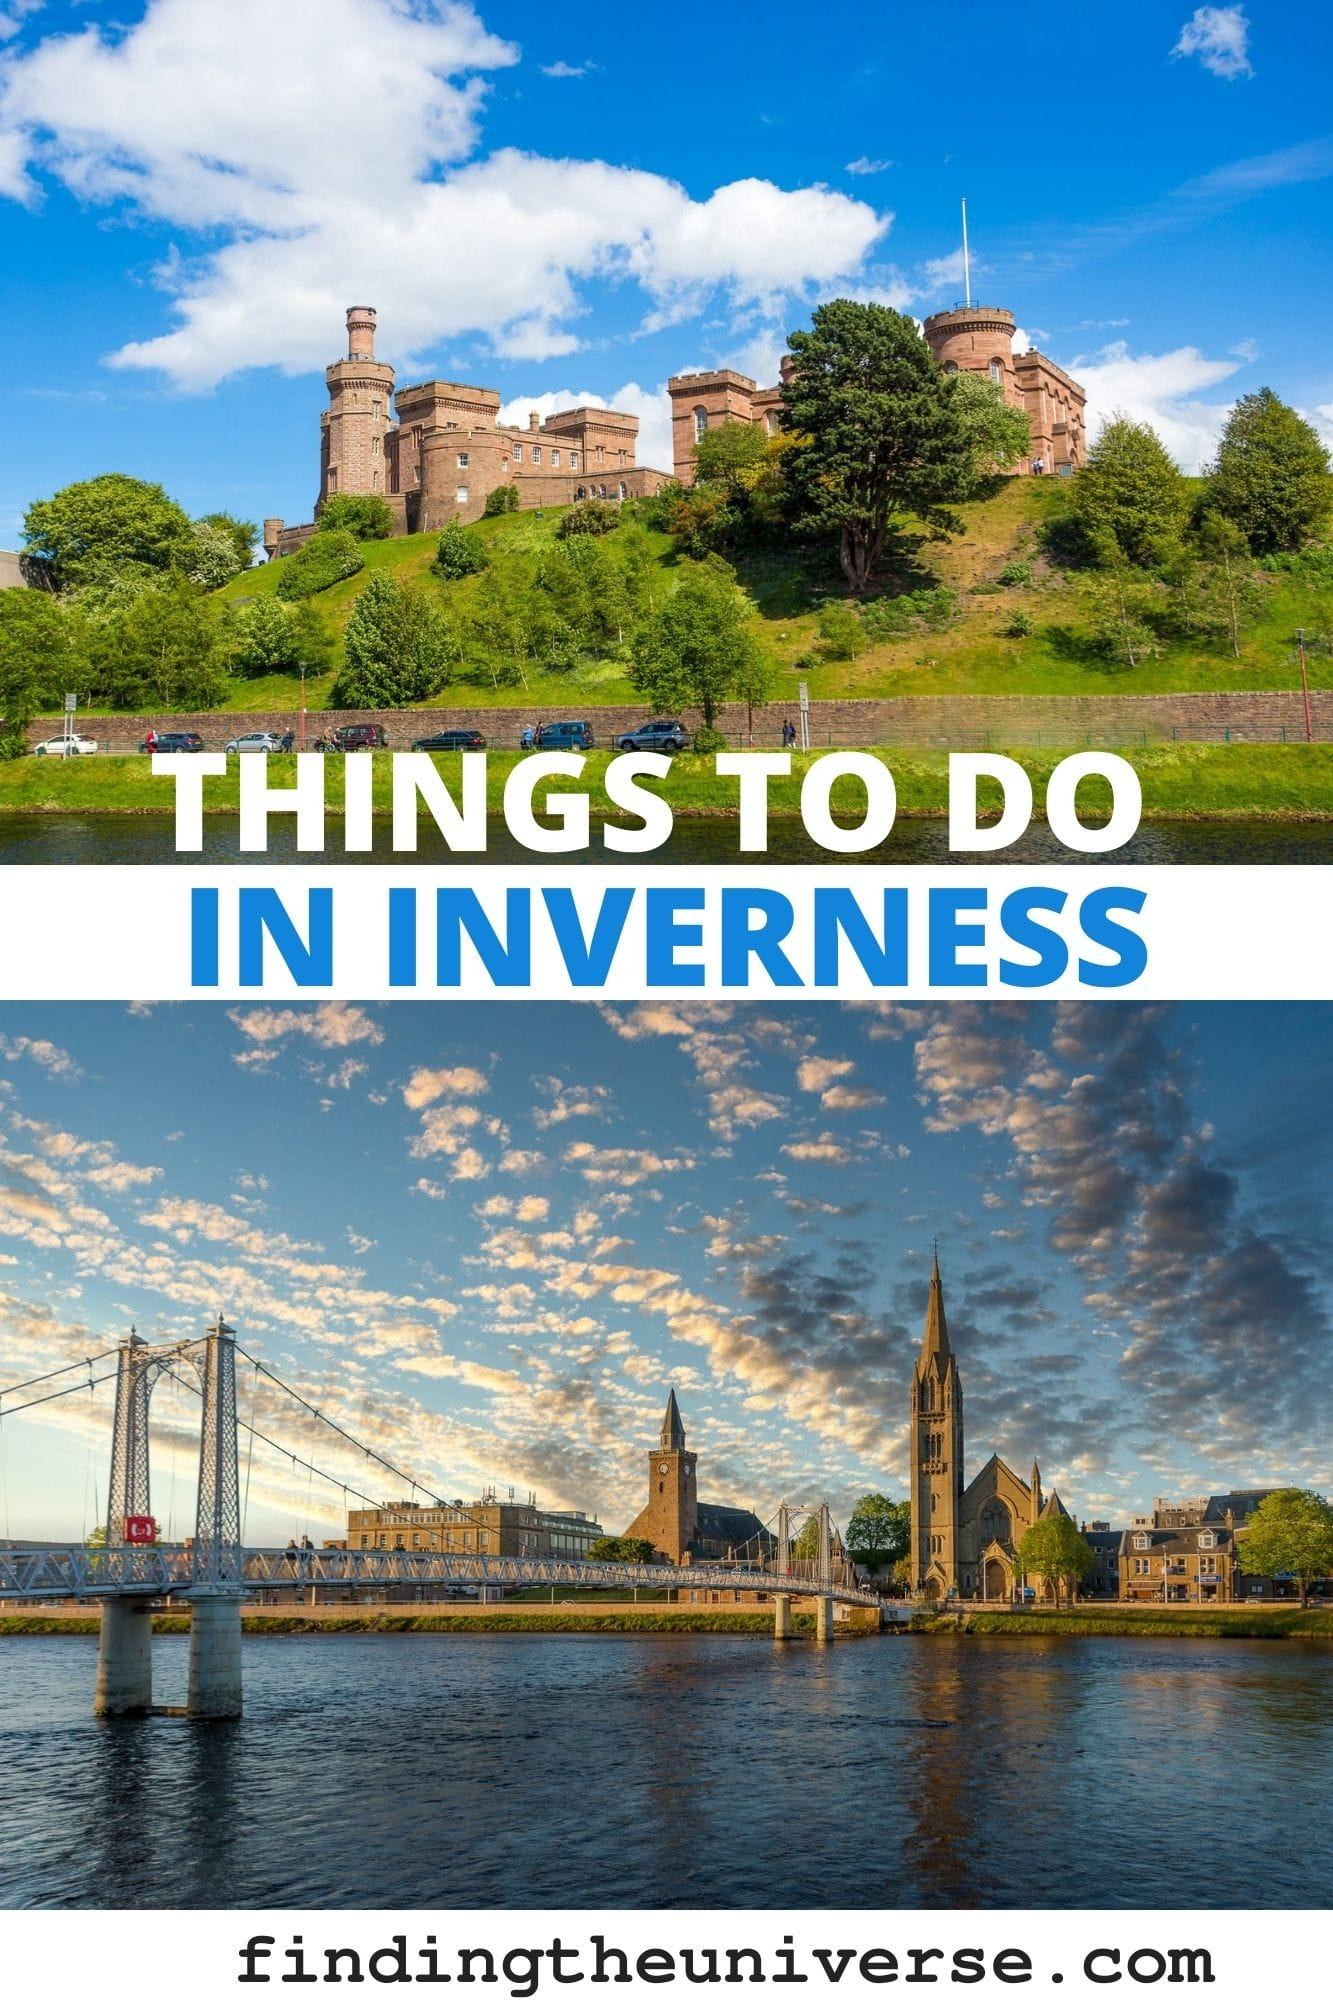 A detailed guide to things to do in Inverness. All the highlights in the city plus attractions near Inverness as well as planning tips